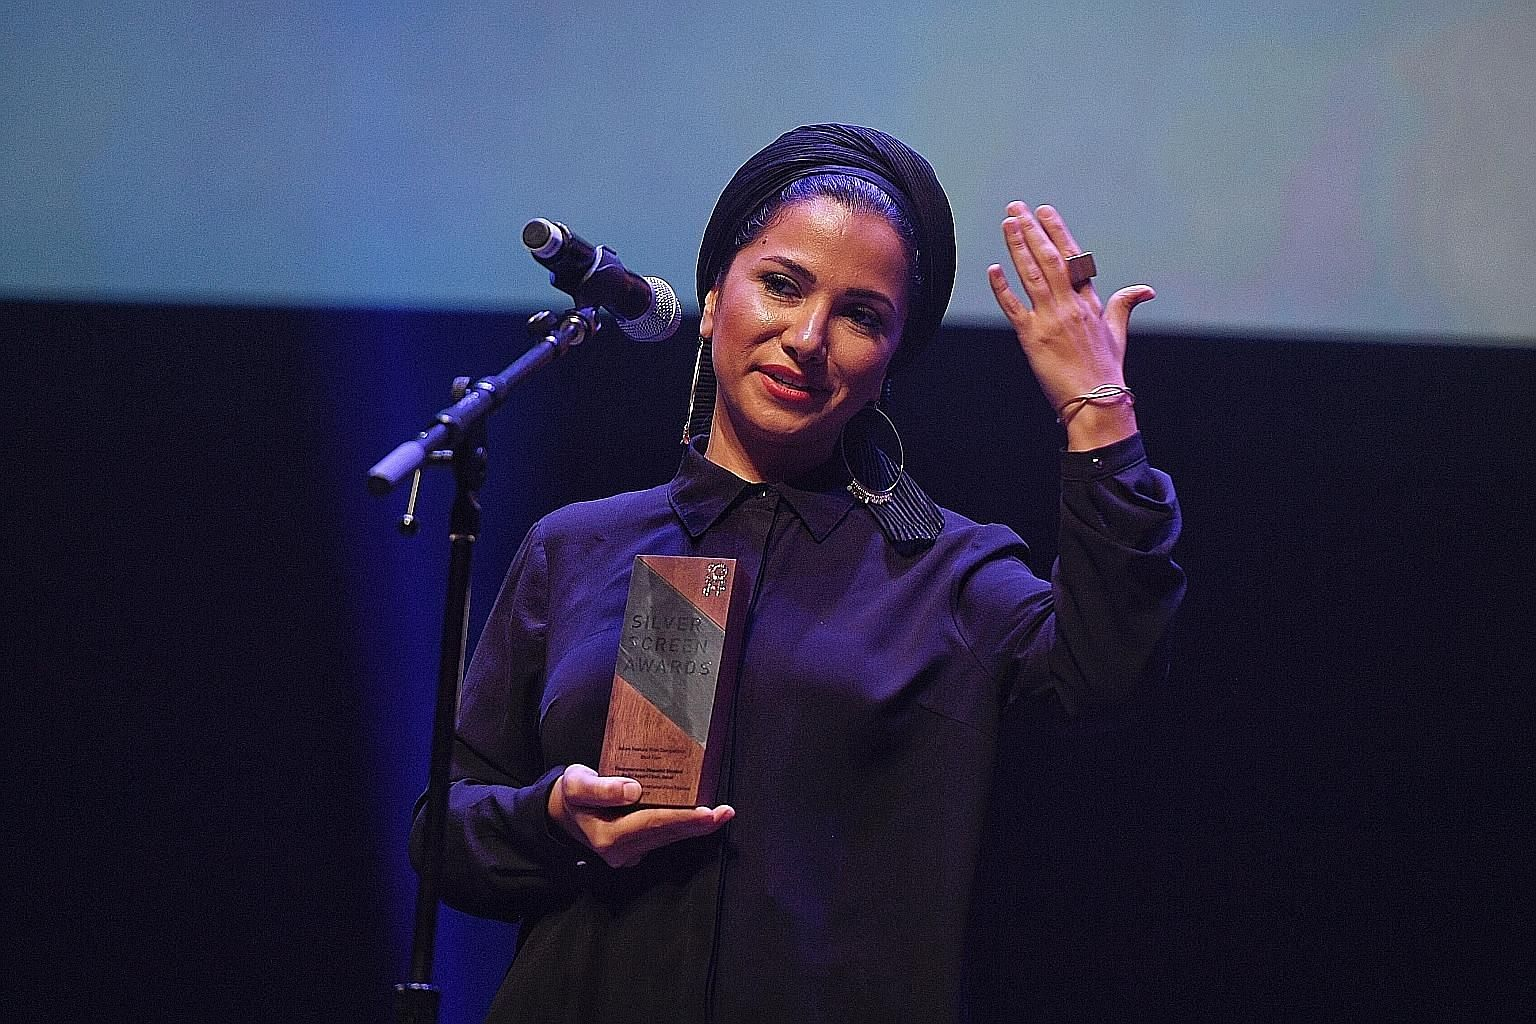 Screenwriter Farnoosh Samadi collecting the award for Iranian movie Disappearance (Napadid Shodan) by Ali Asgari, which won the top accolade of Best Film in the Asian Feature Film category. Actress Sadaf Asgari won the Best Performance award.